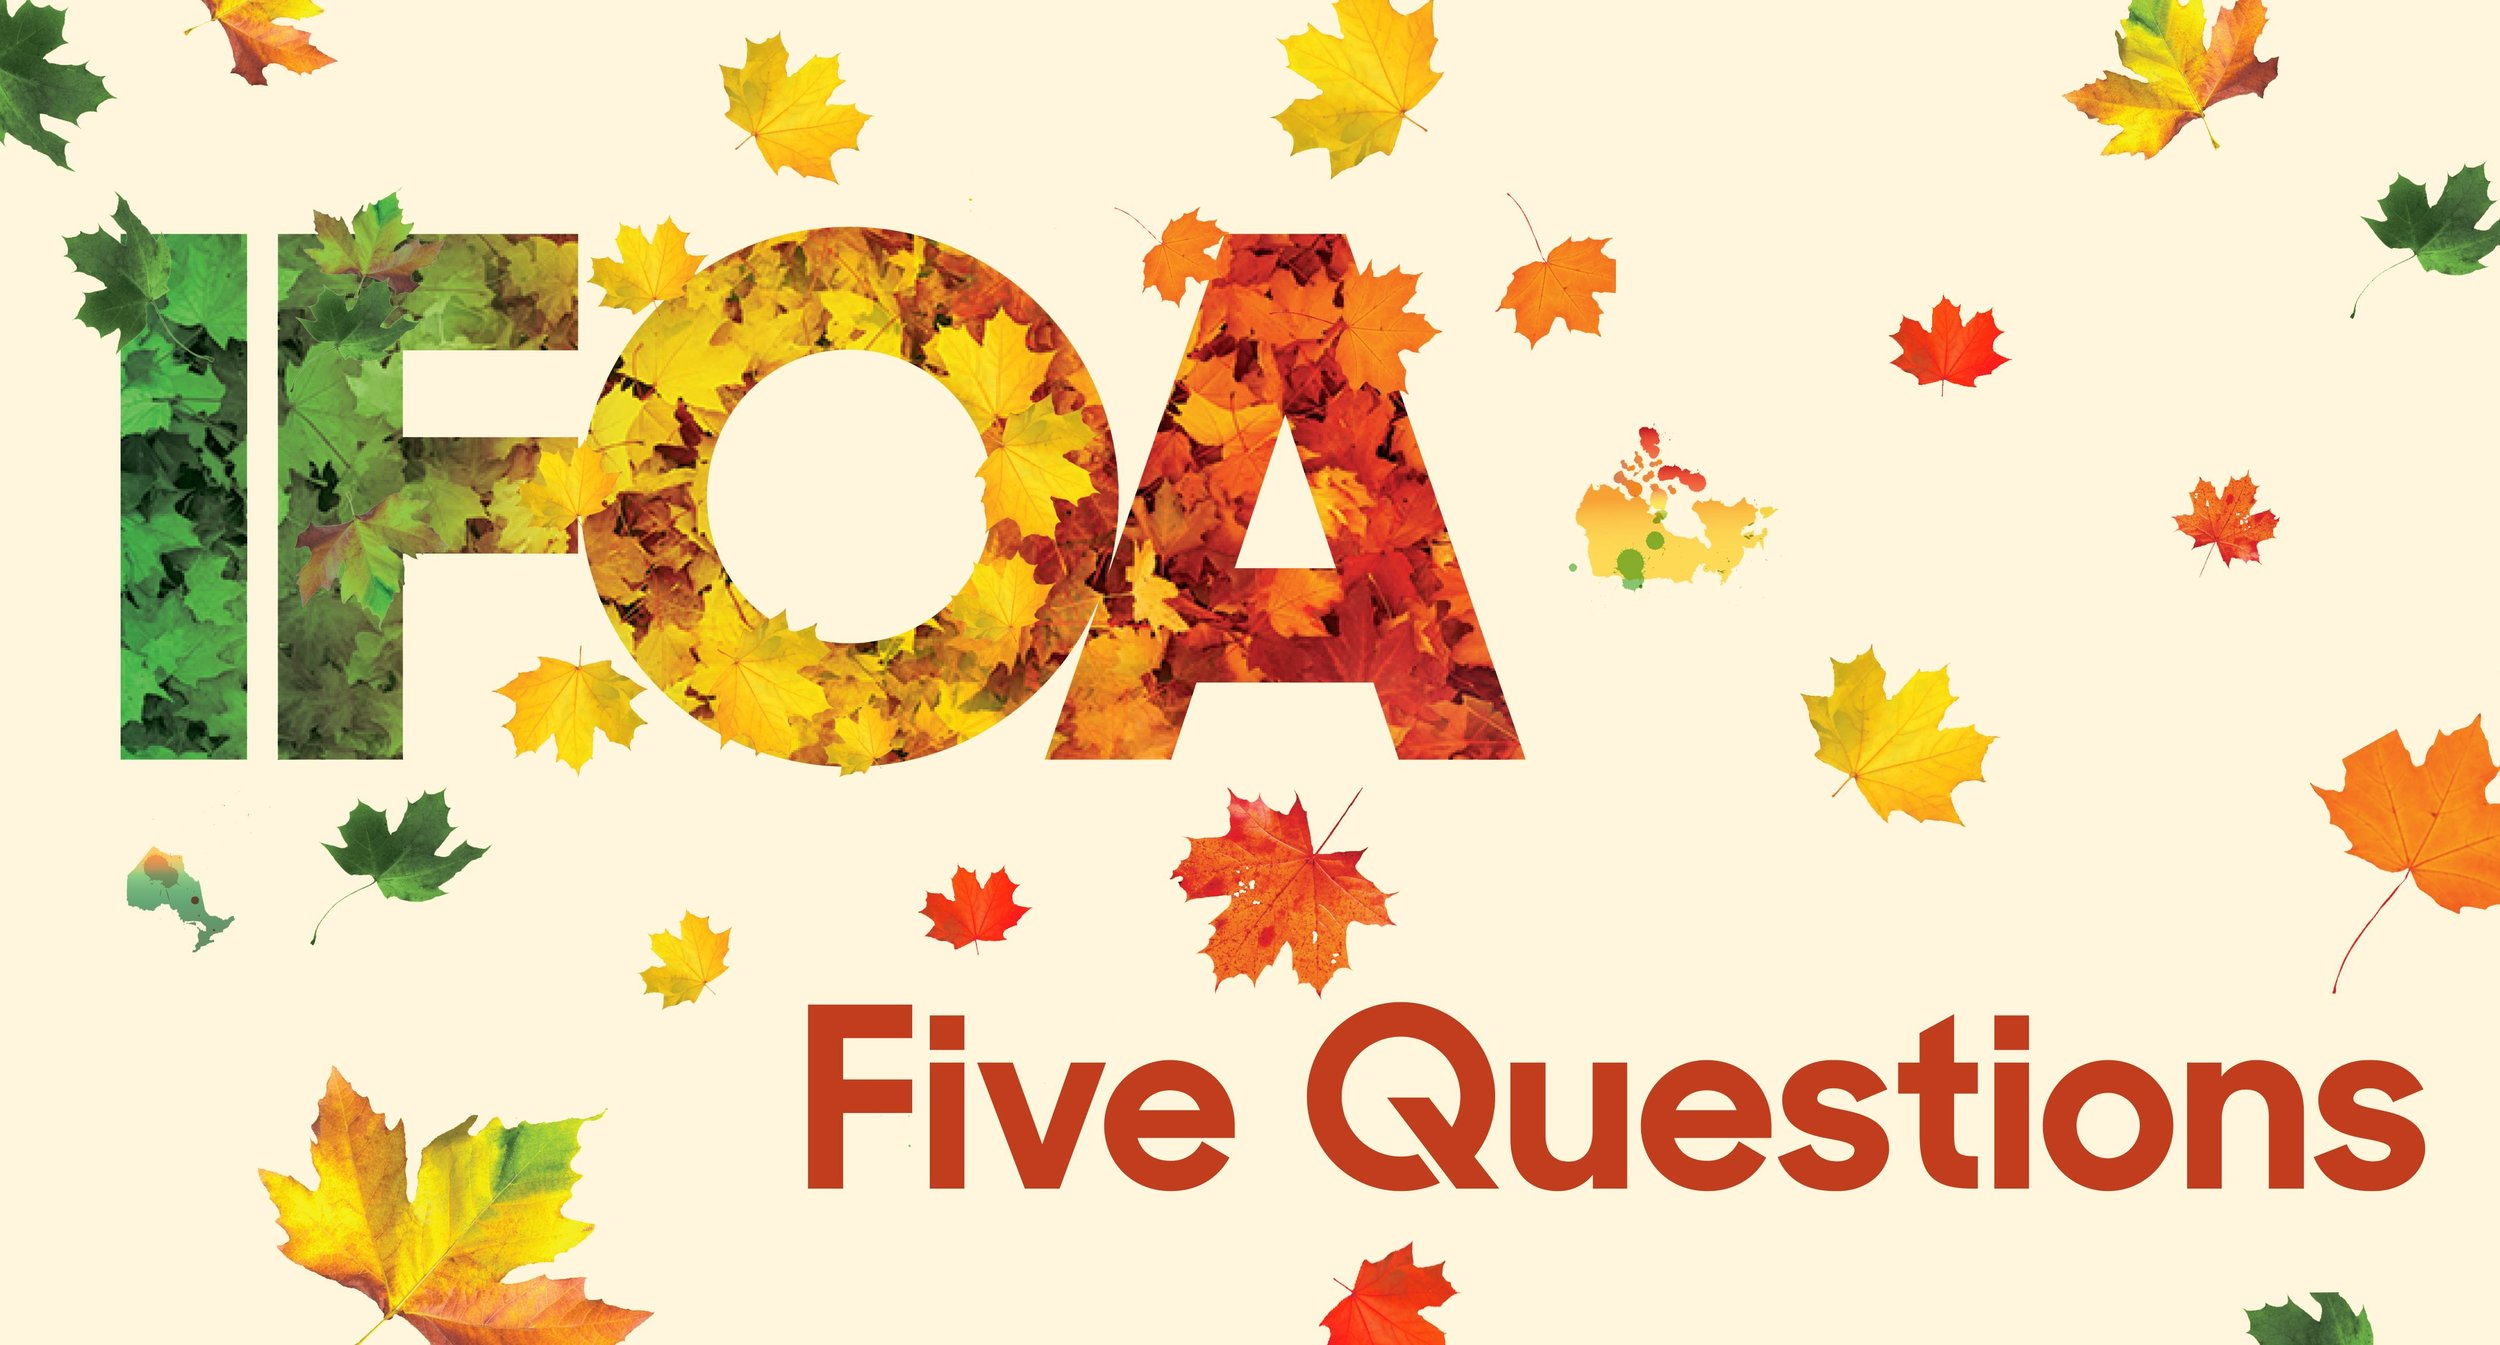 Five-Questions-banner-festival-authors.jpg